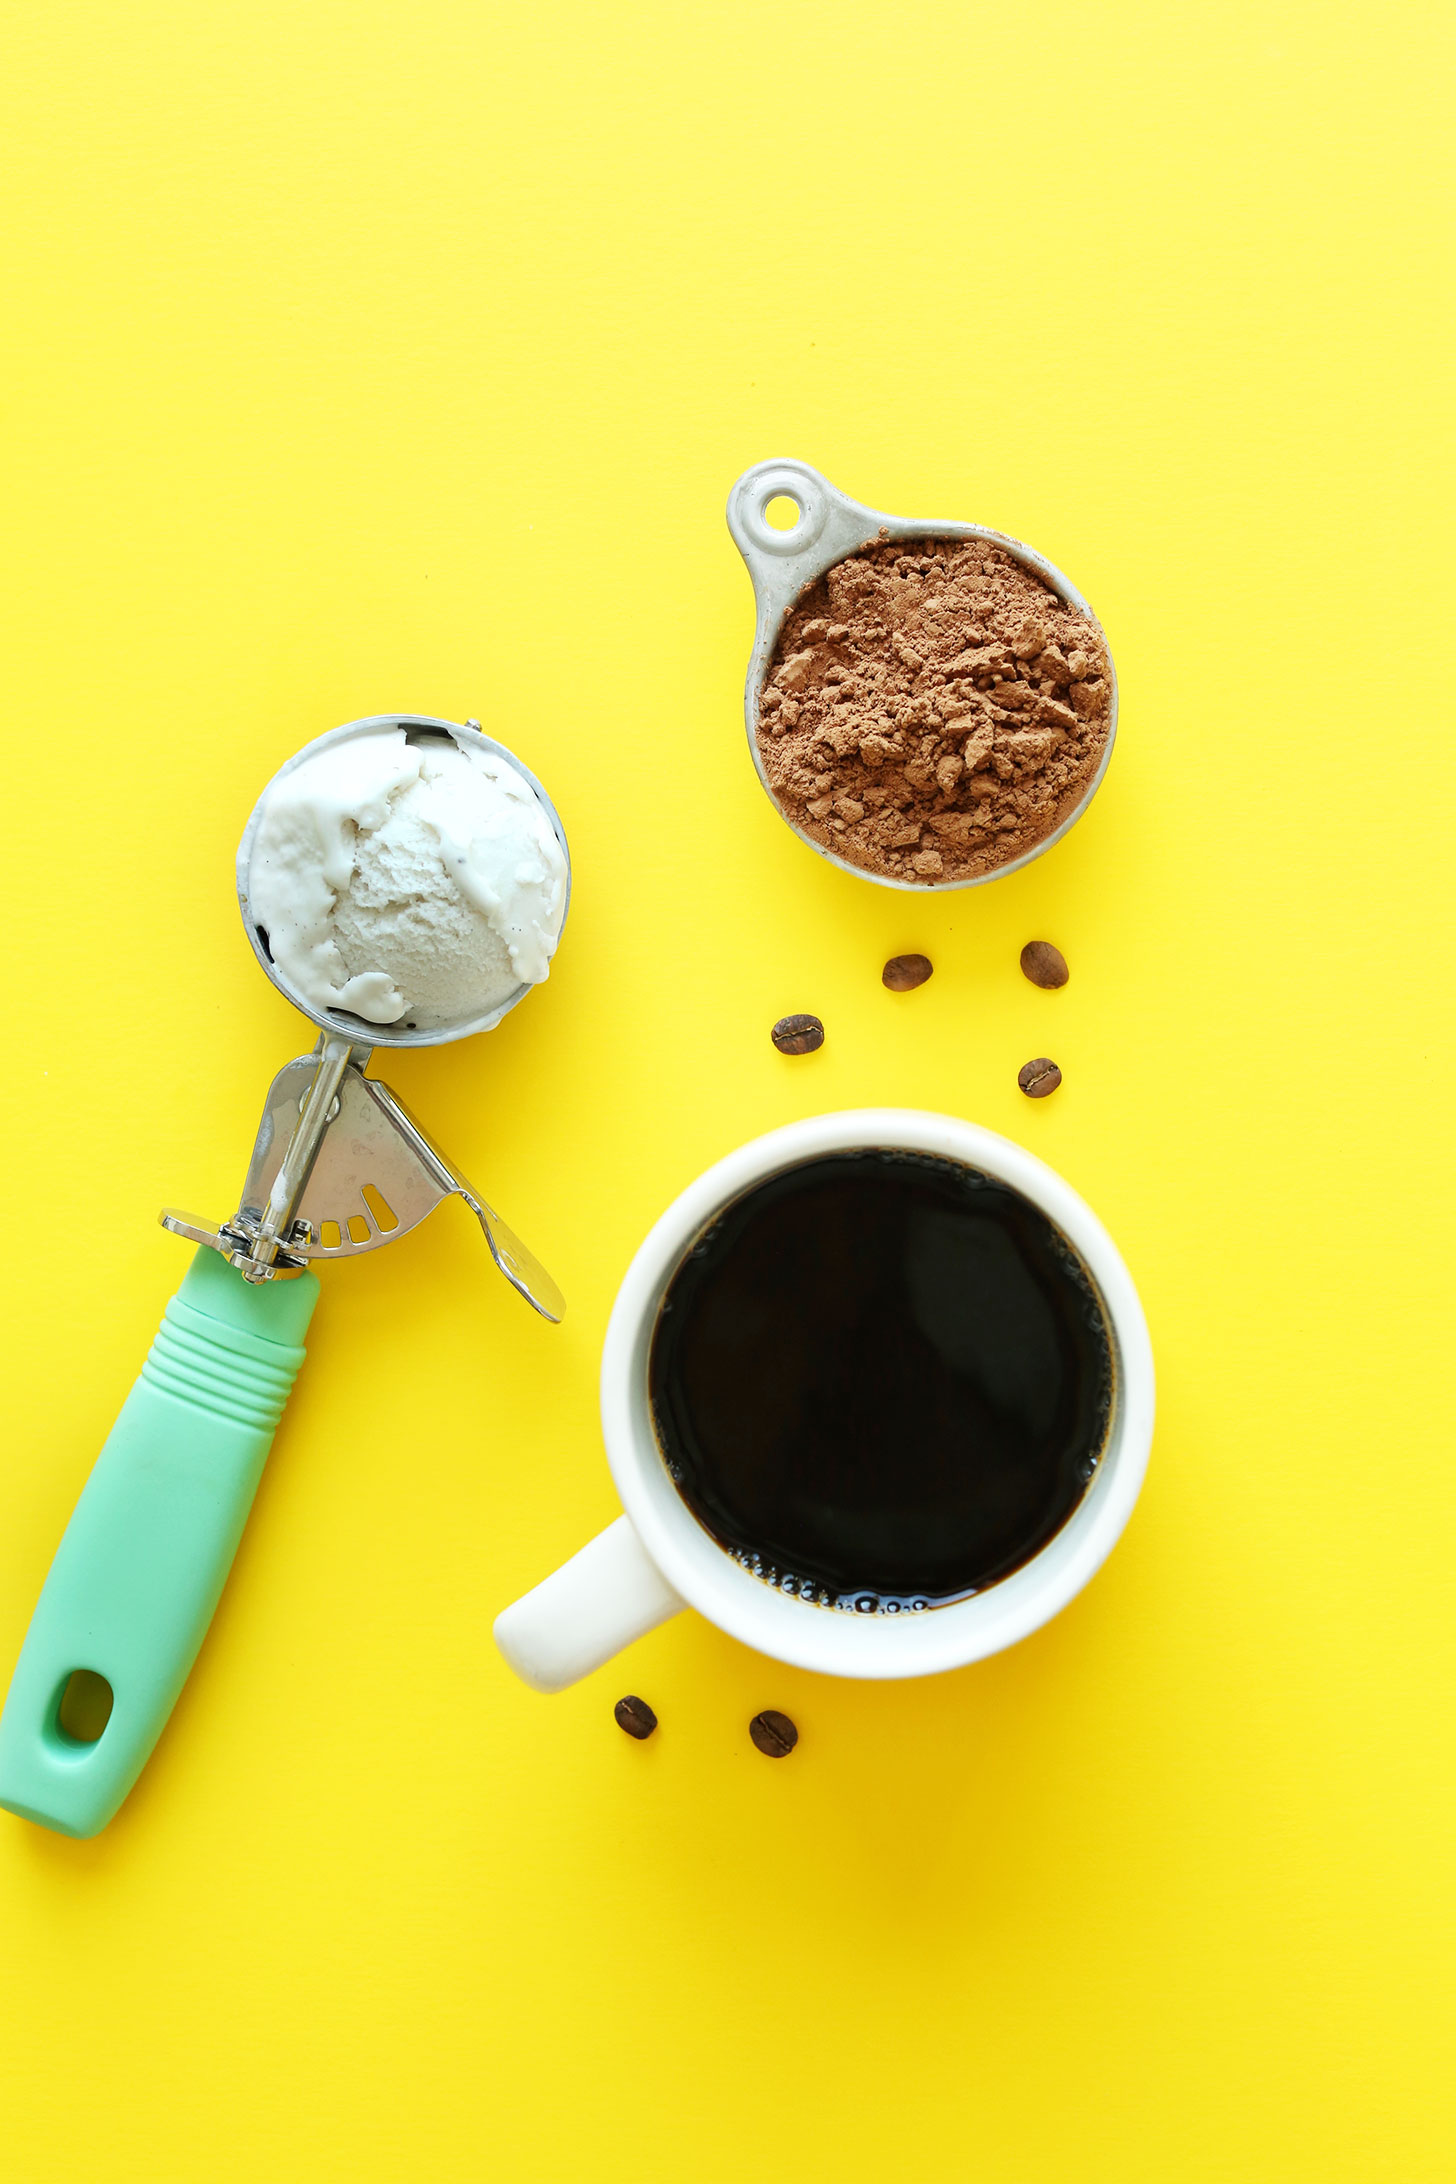 Cocoa powder, vegan ice cream, and coffee for making a delicious vegan milkshake